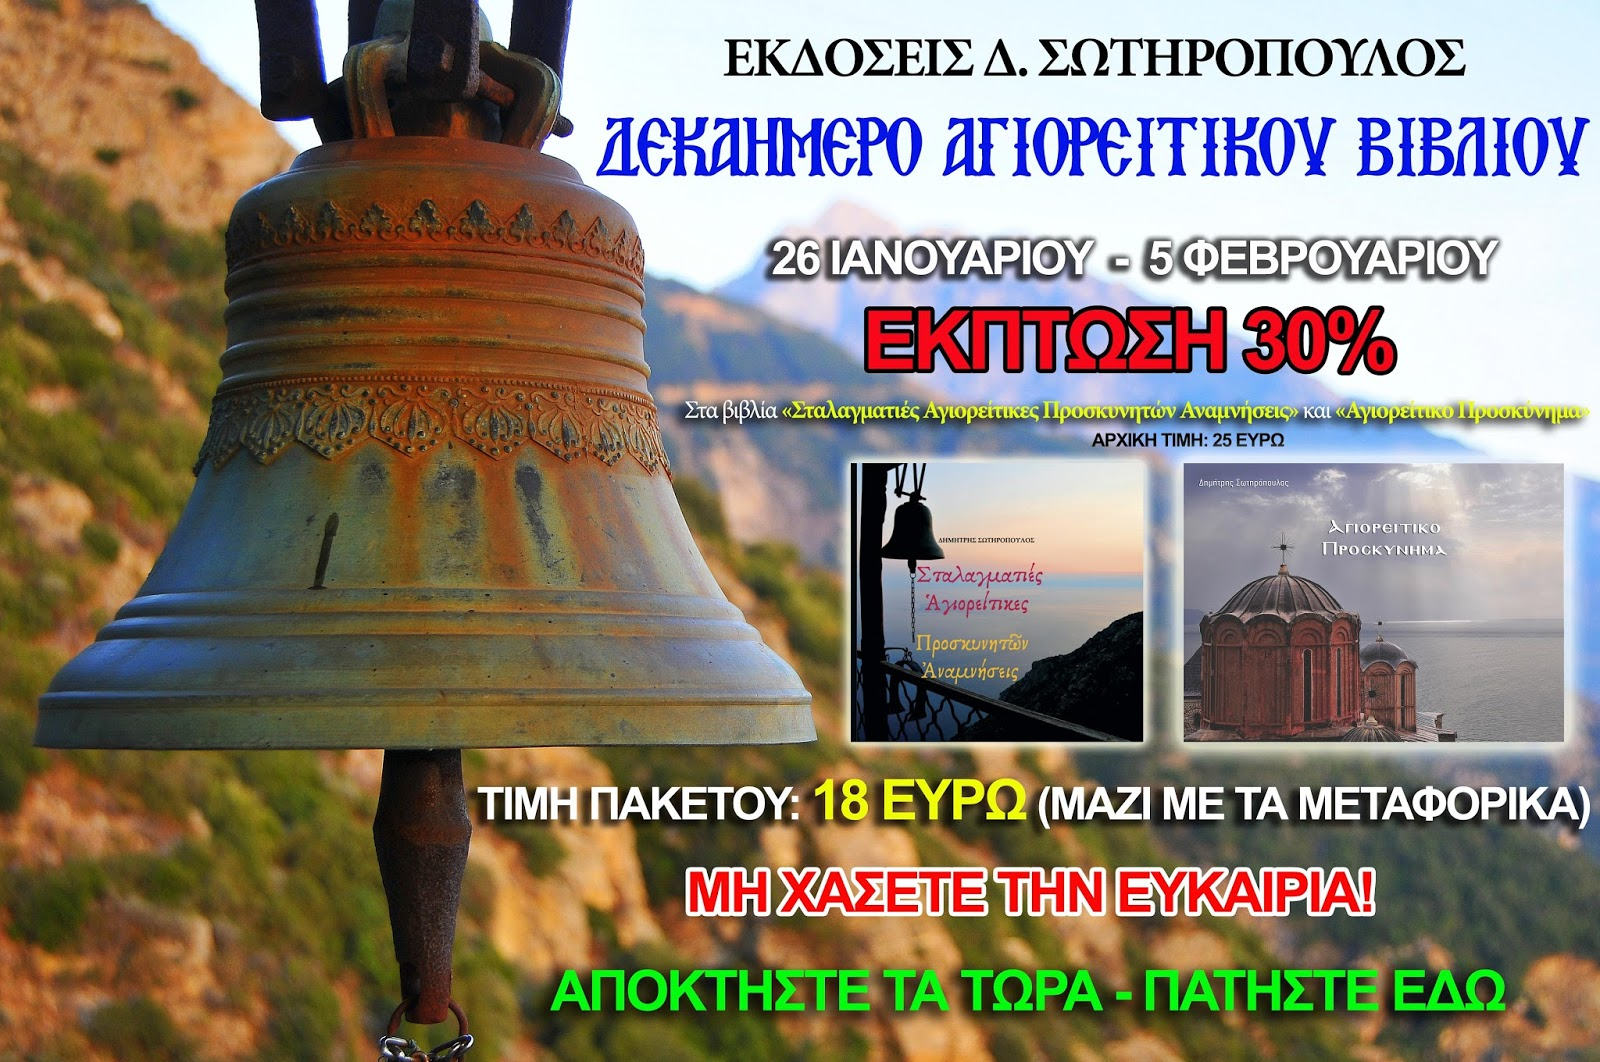 http://www.dimitrisotiropoulosbooks.com/collections/frontpage/products/30